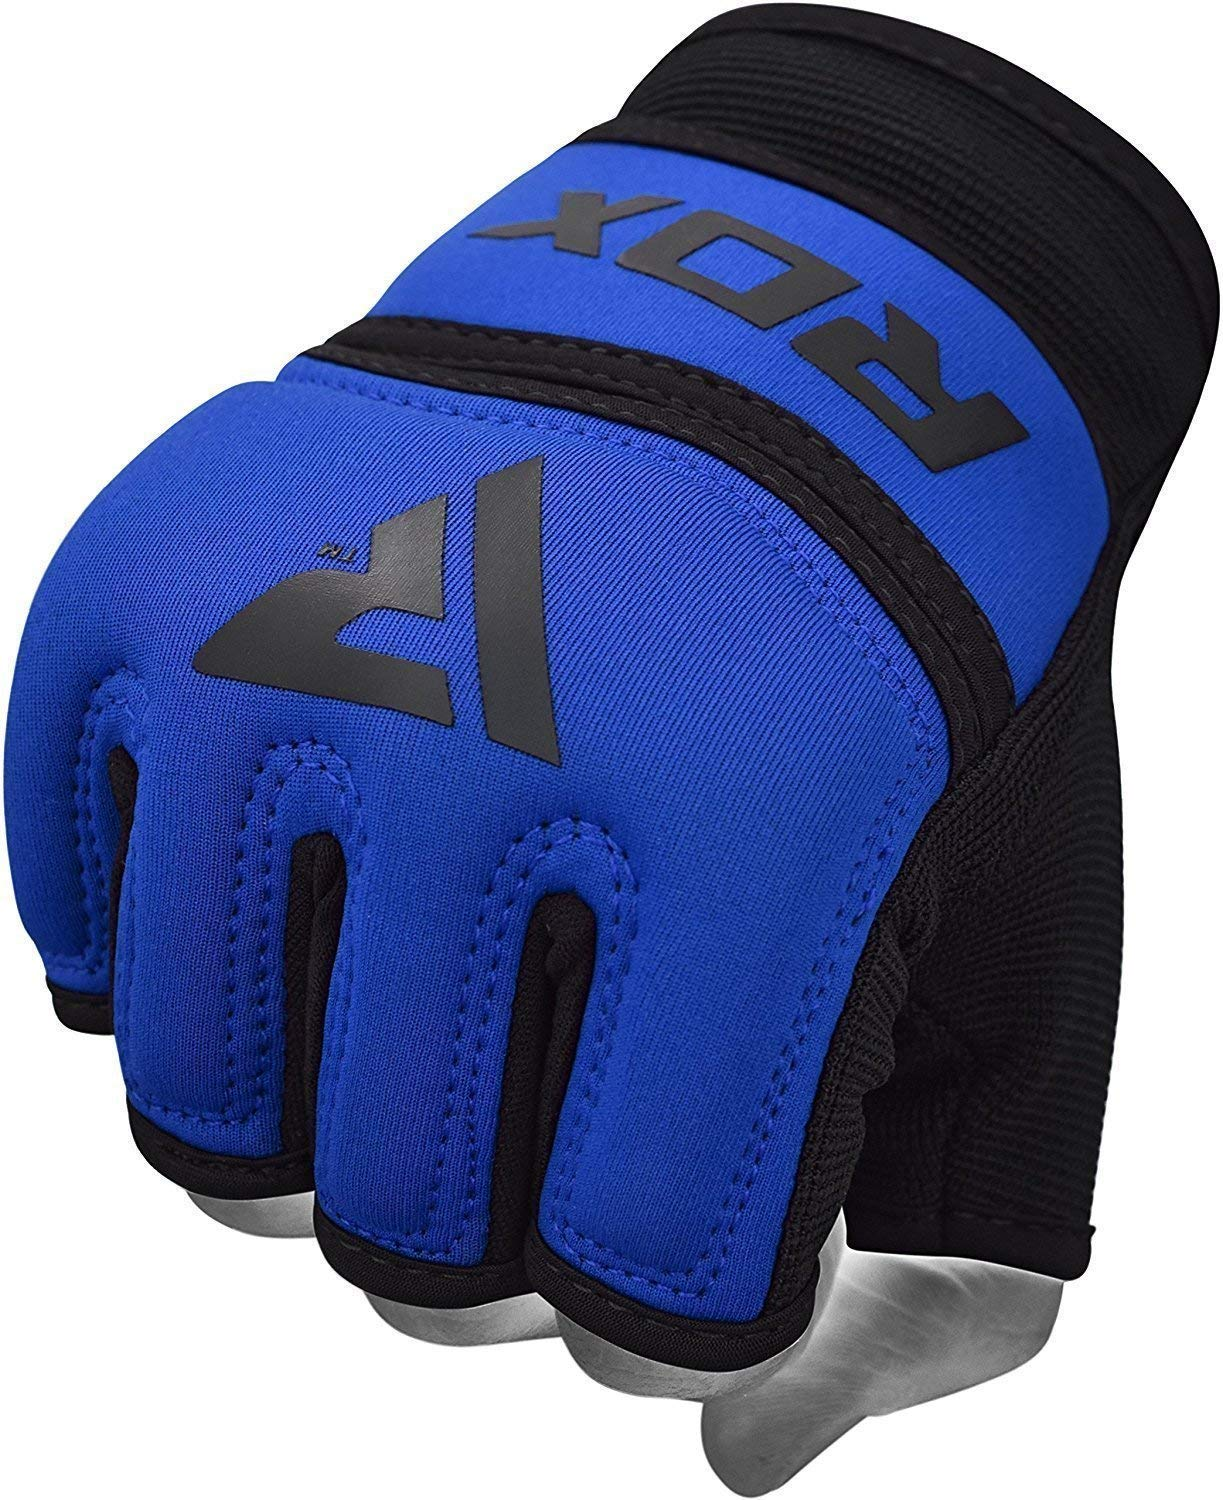 RDX Hand Wraps Boxing Inner Gel Gloves Under MMA Fist Knuckle Protector Muay Thai Fist Bandages Neoprene Padded Kickboxing Mitts